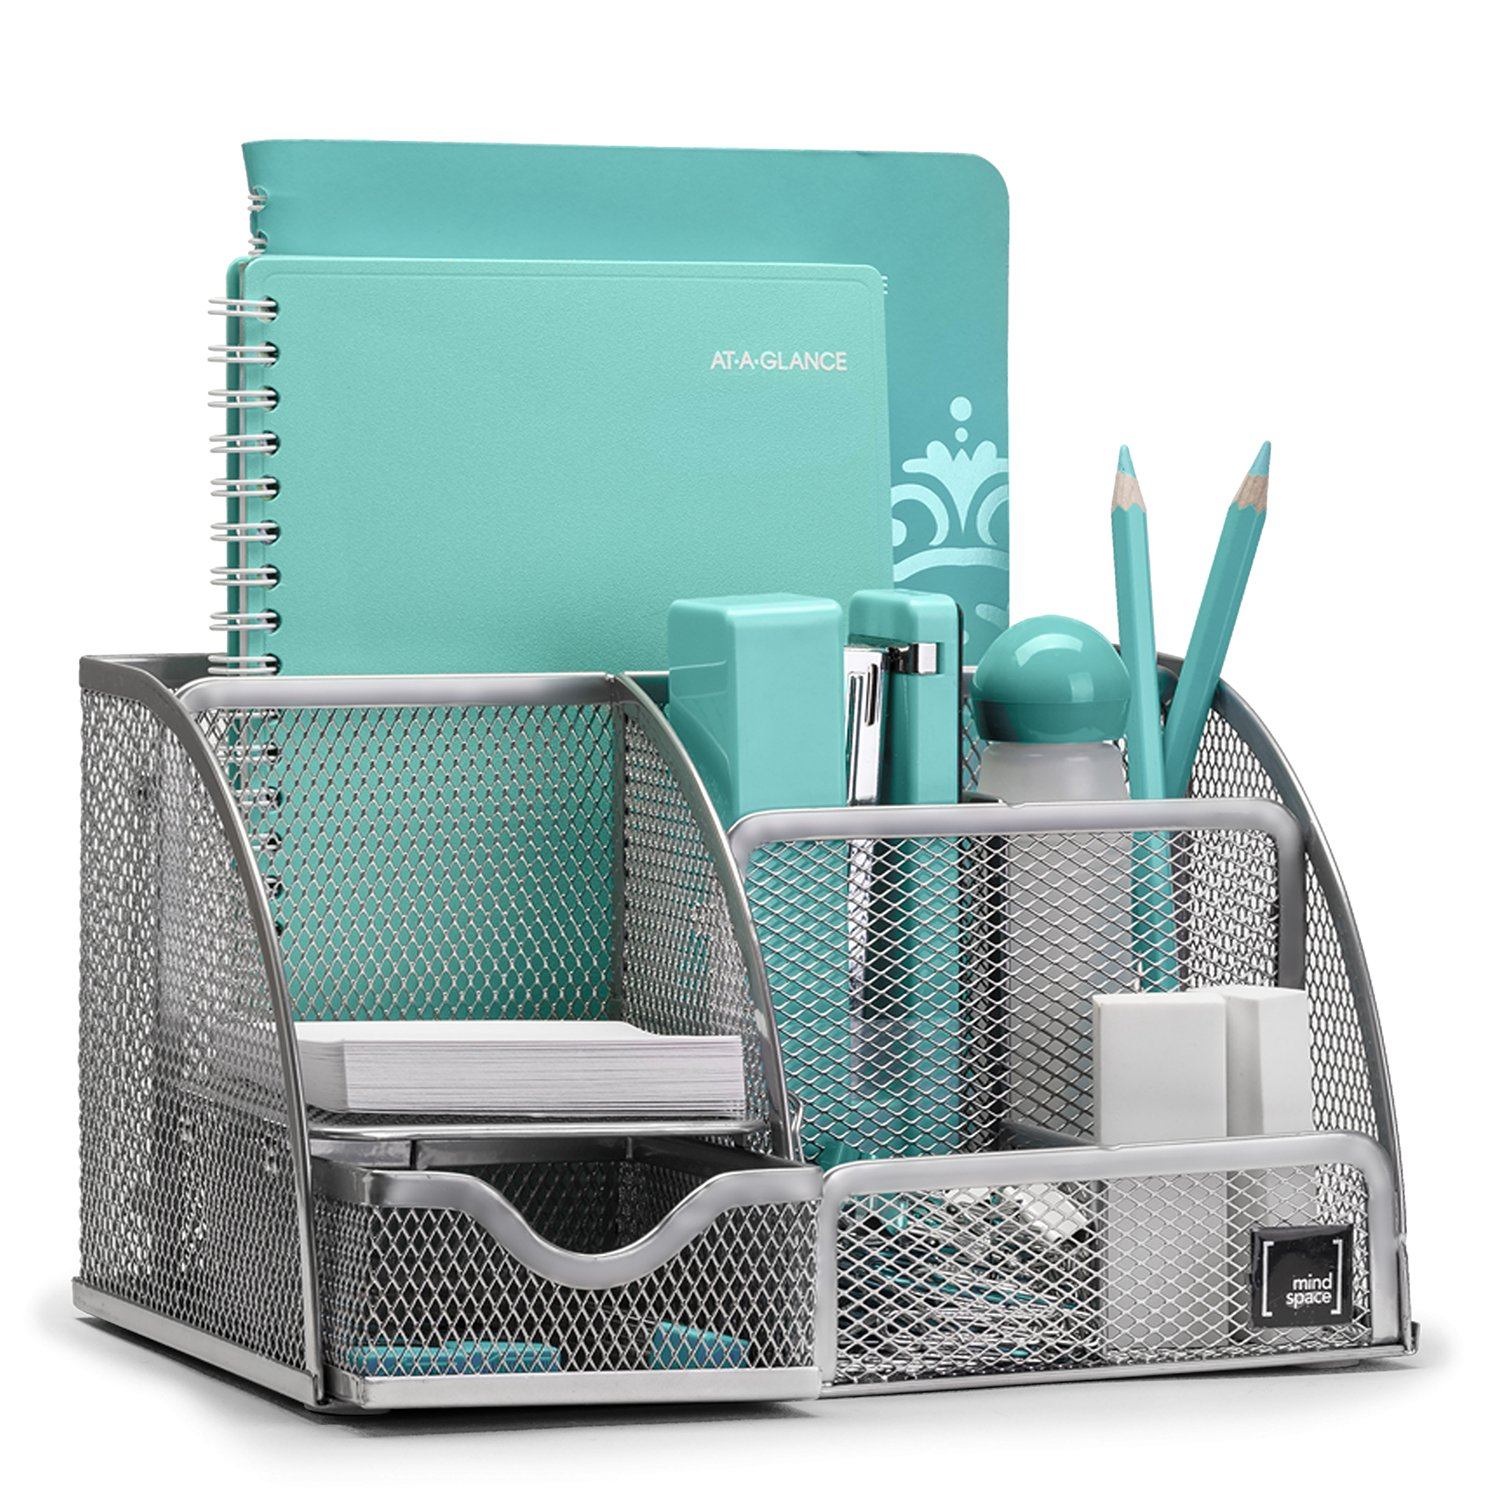 Mindspace Office Desk Organizer with 6 Compartments + Drawer + Pen & Pencil Holder   The Mesh Collection, Silver by Mindspace